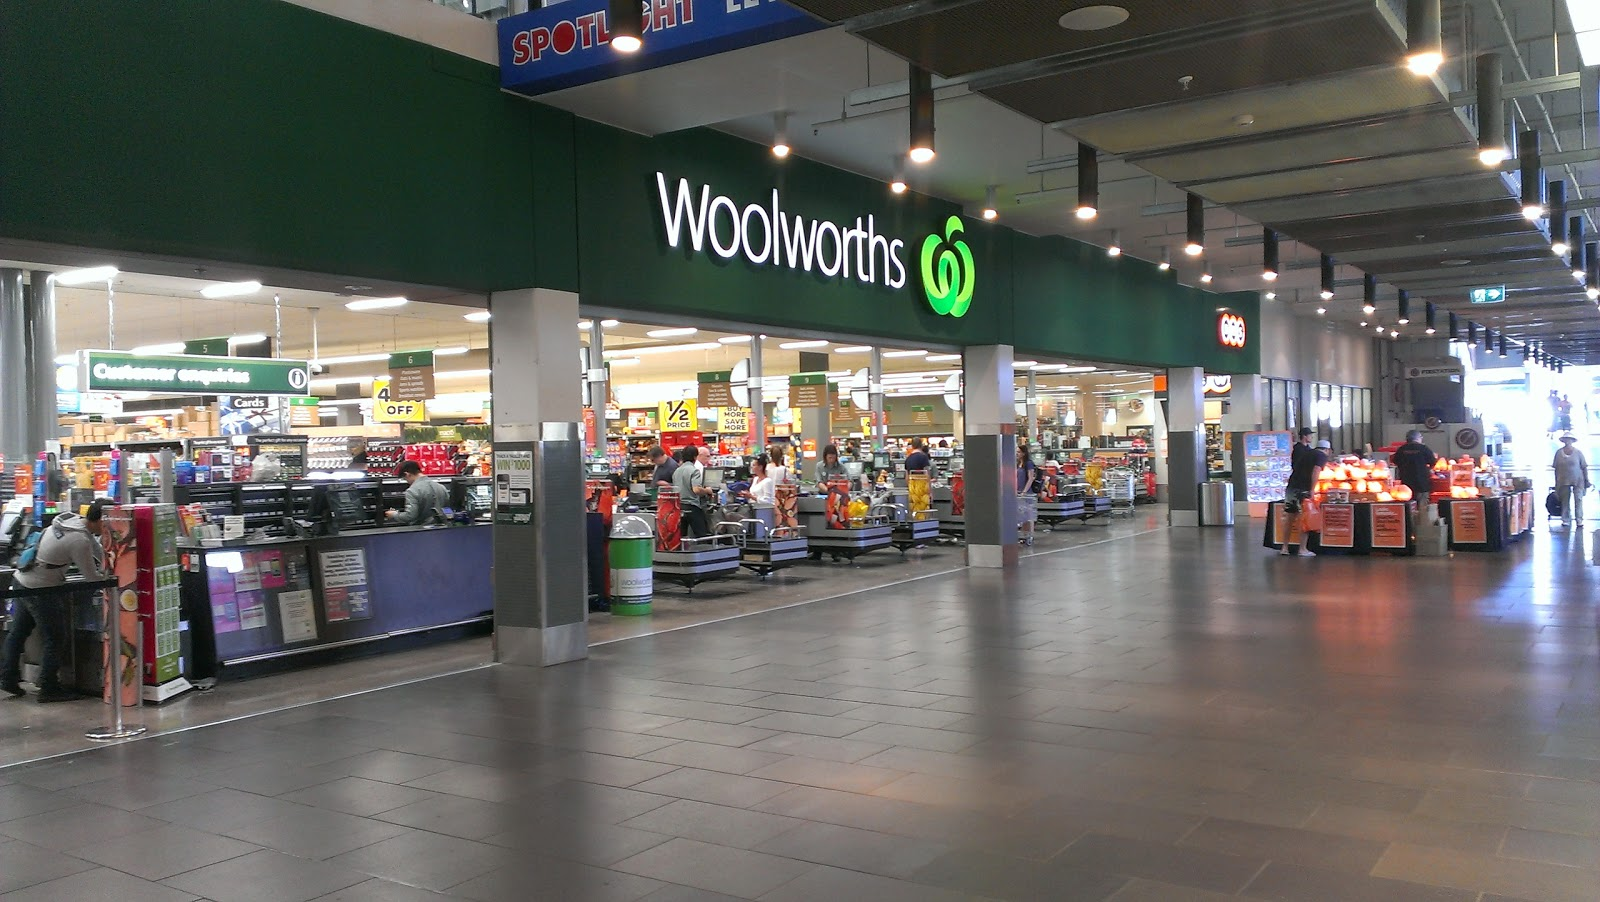 Melbourne Woolworths store to allow nude photo shoot